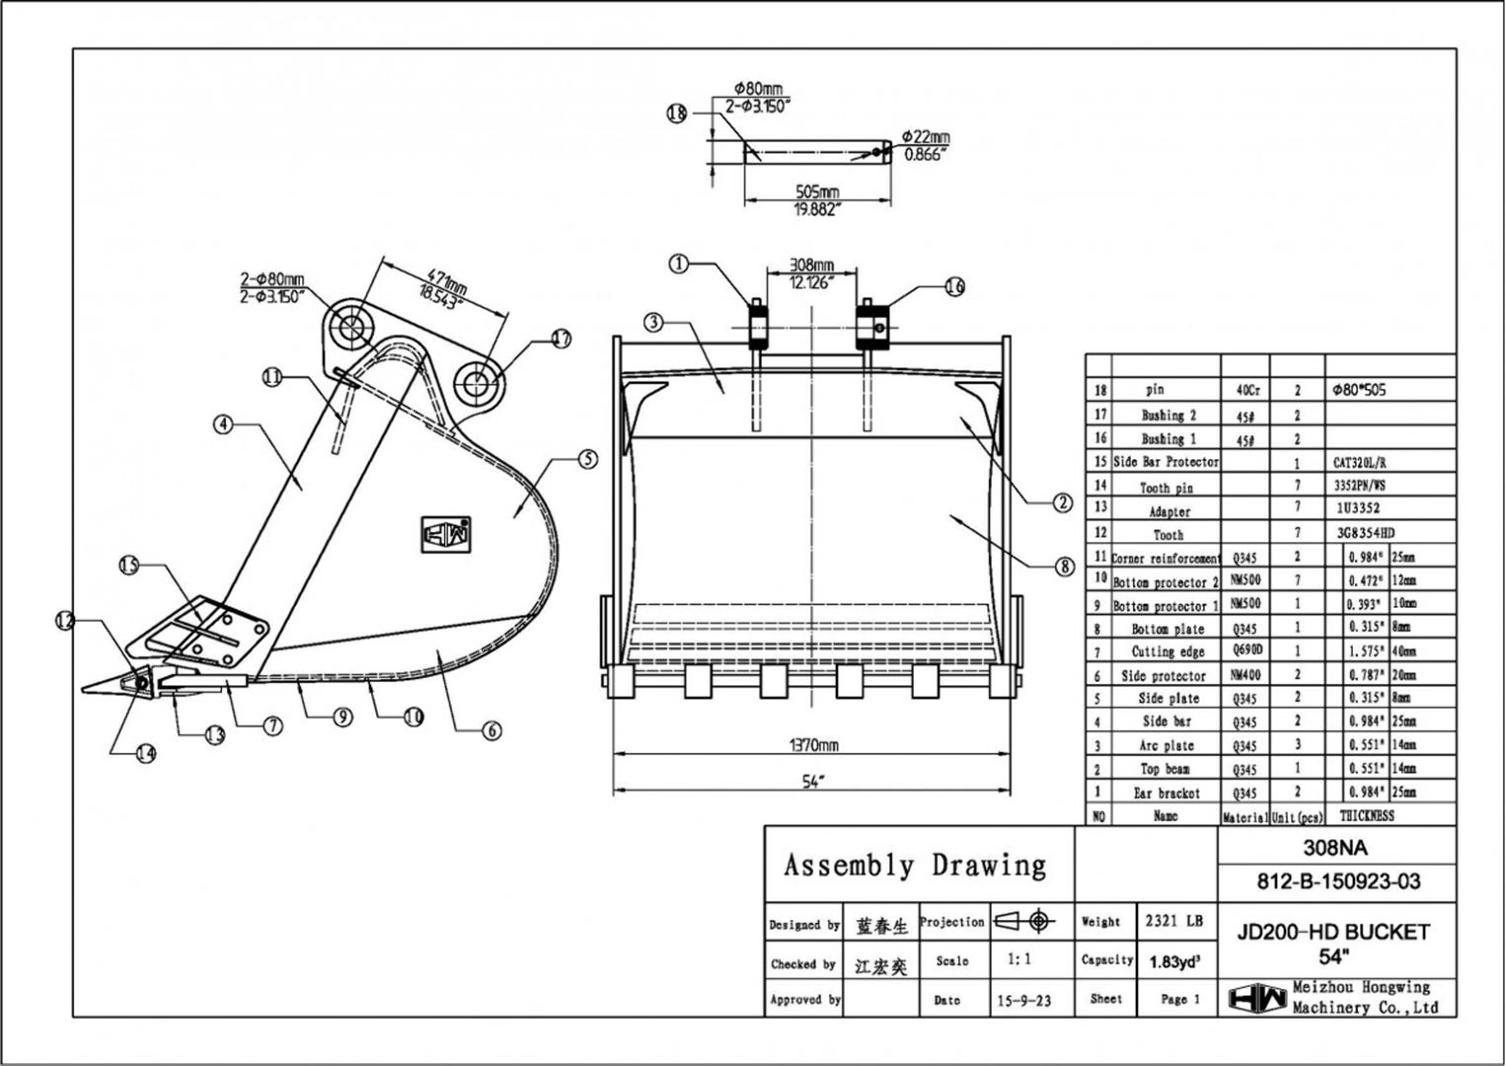 John Deere 200 Excavator Fuse Panel Diagram For 5320 Box 5